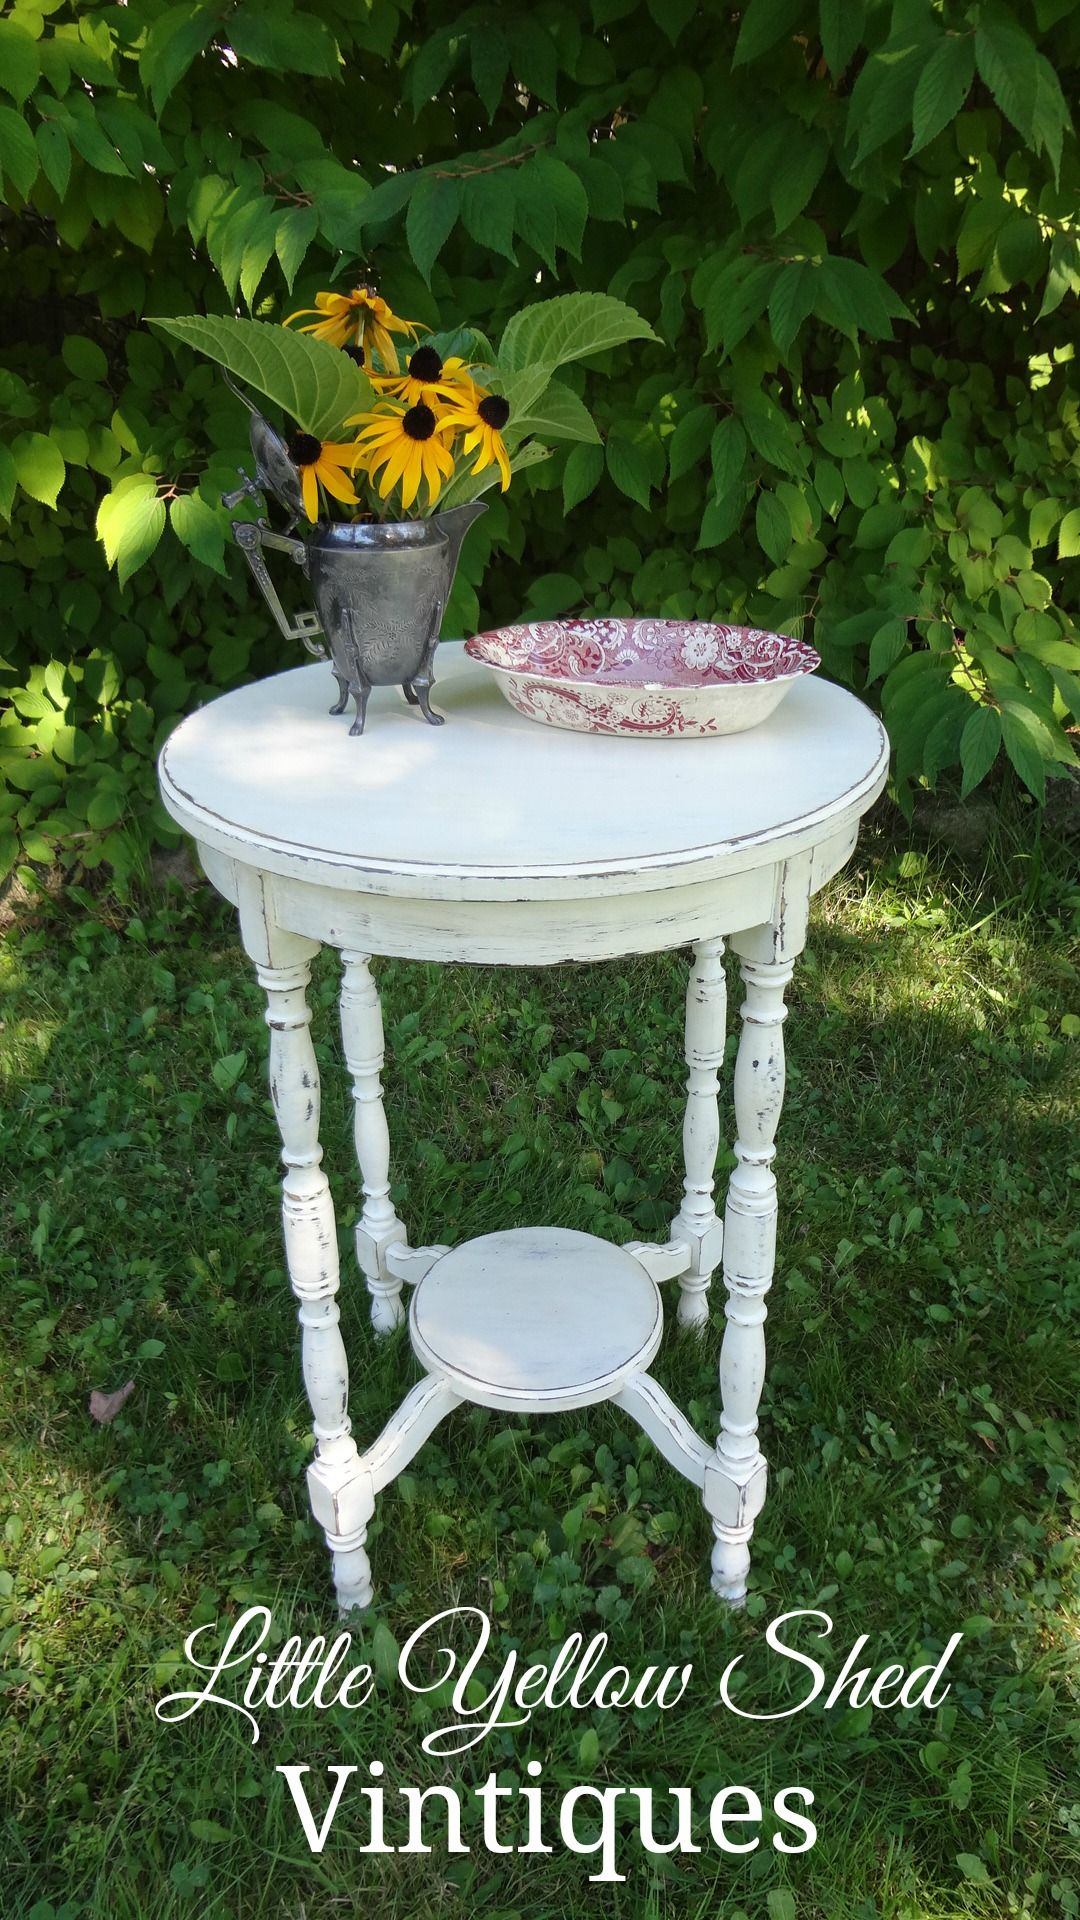 Antique White Side Table #17 - Refinished Antique Side Table Painted Using An Off-white Sherwin Williams  Paint And Then Distressed